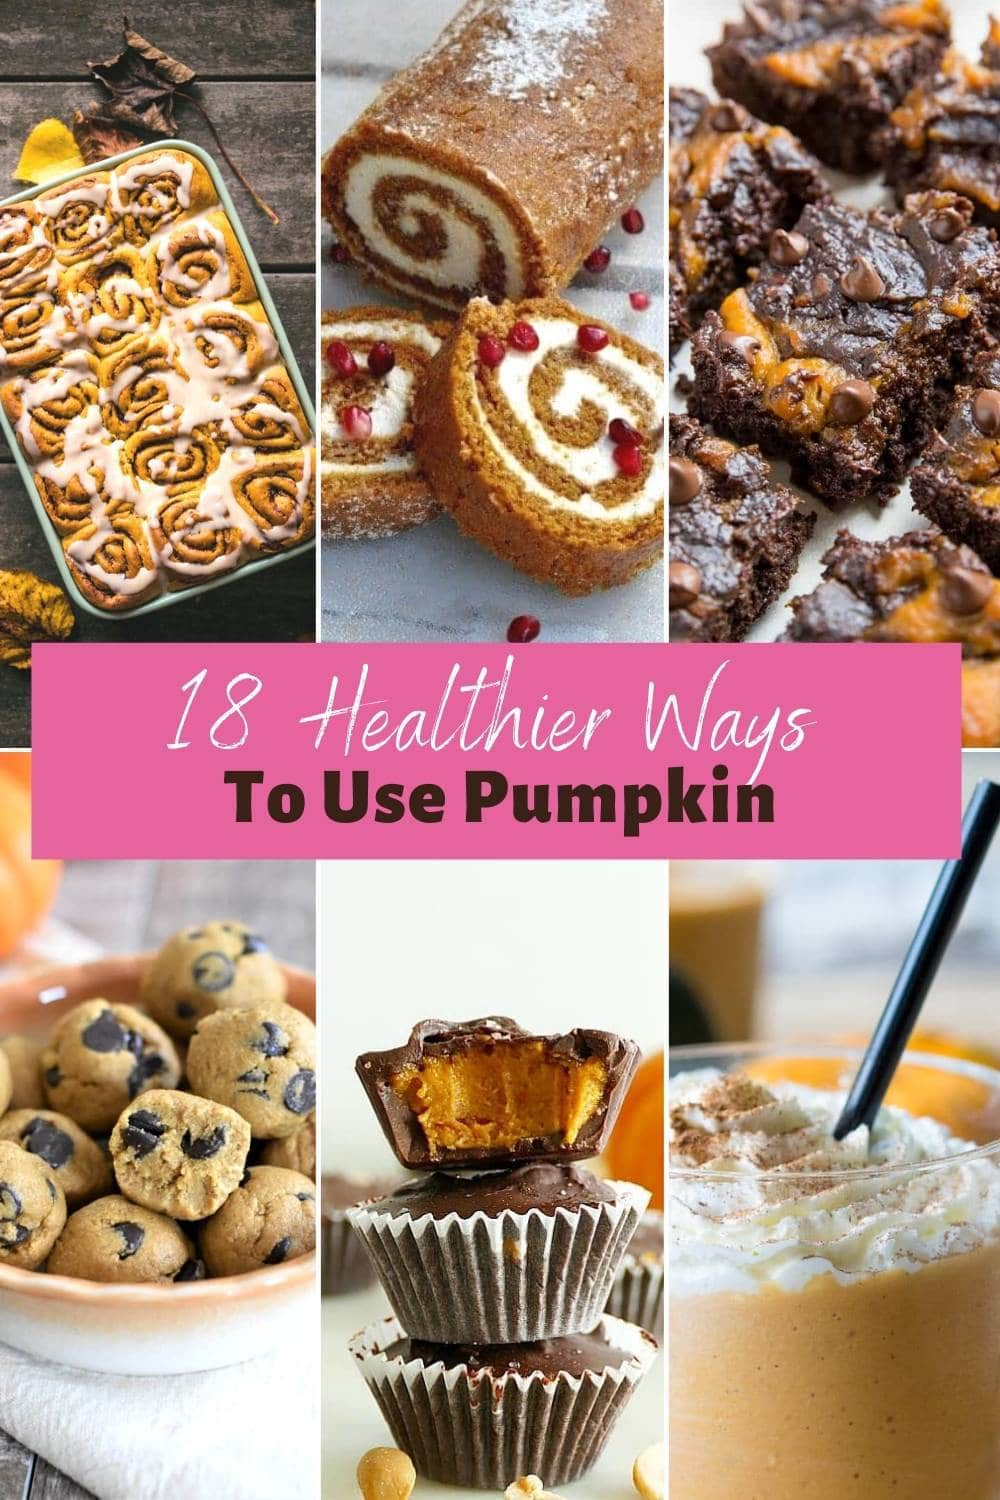 18 Healthy Ways to Use Pumpkin - Healthier Fall Recipes